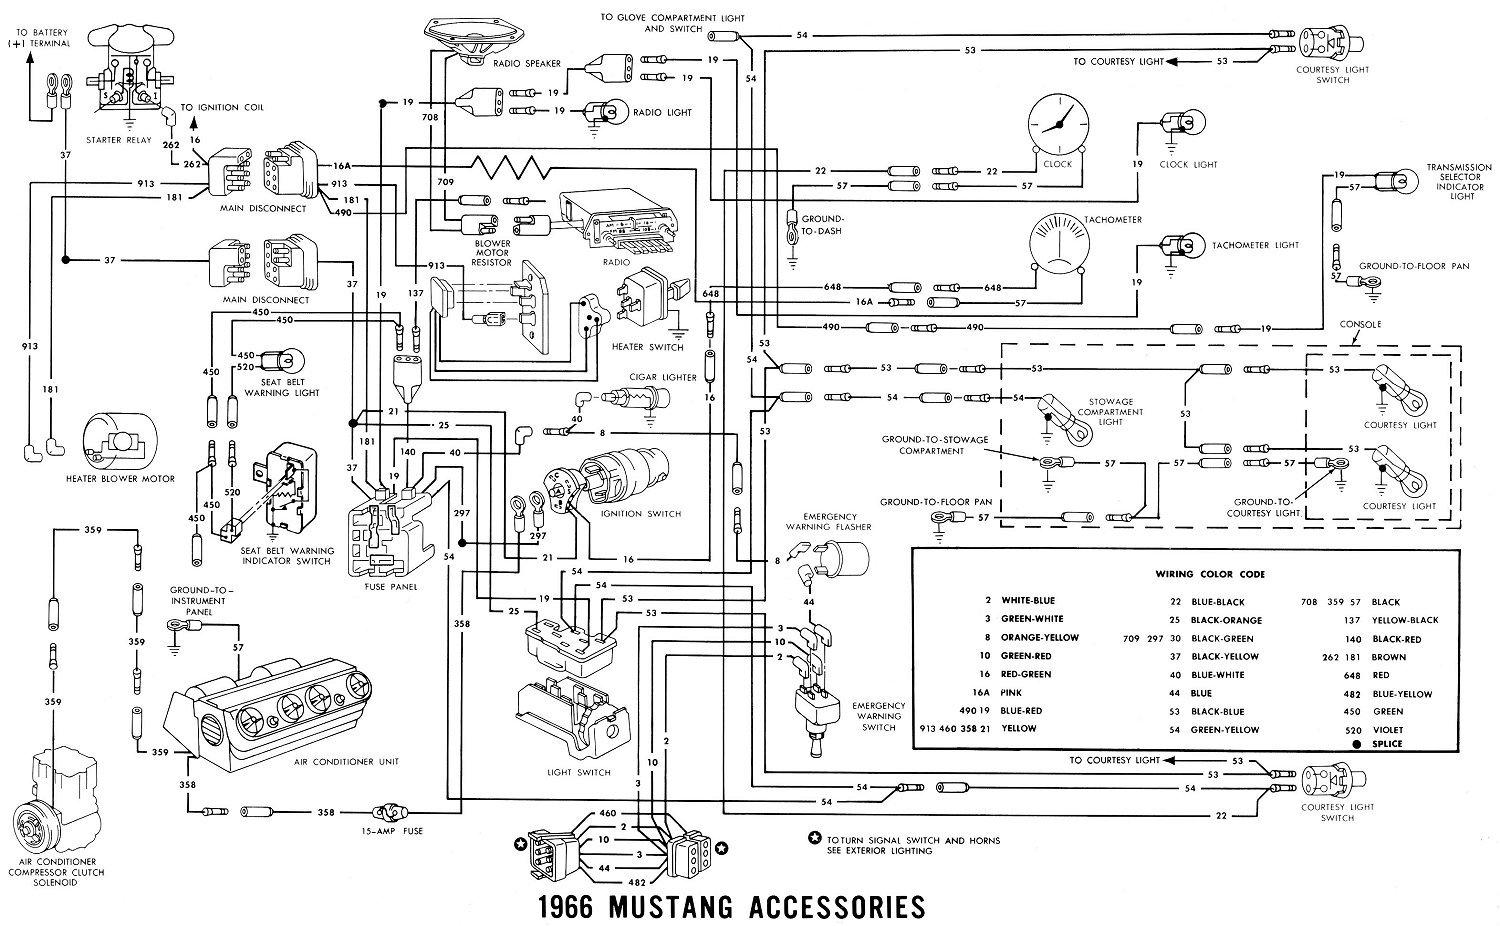 1969 Mustang Radio Wiring Diagram - wiring diagram diode-view -  diode-view.vaiatempo.it